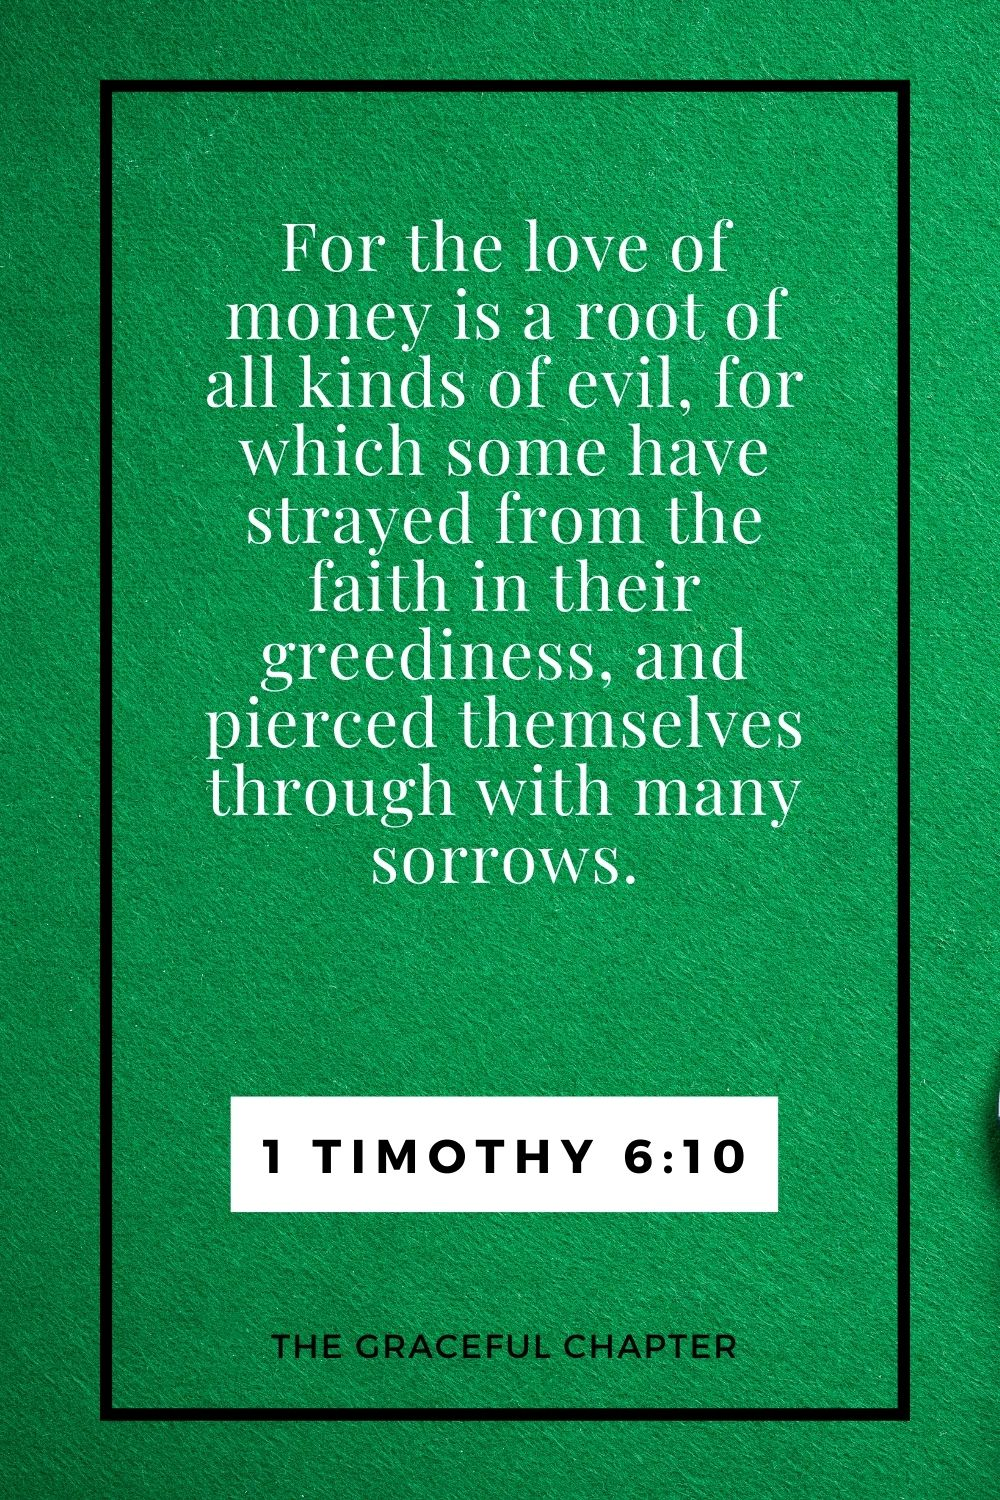 For the love of money is a root of all kinds of evil, for which some have strayed from the faith in their greediness, and pierced themselves through with many sorrows. 1 Timothy 6:10